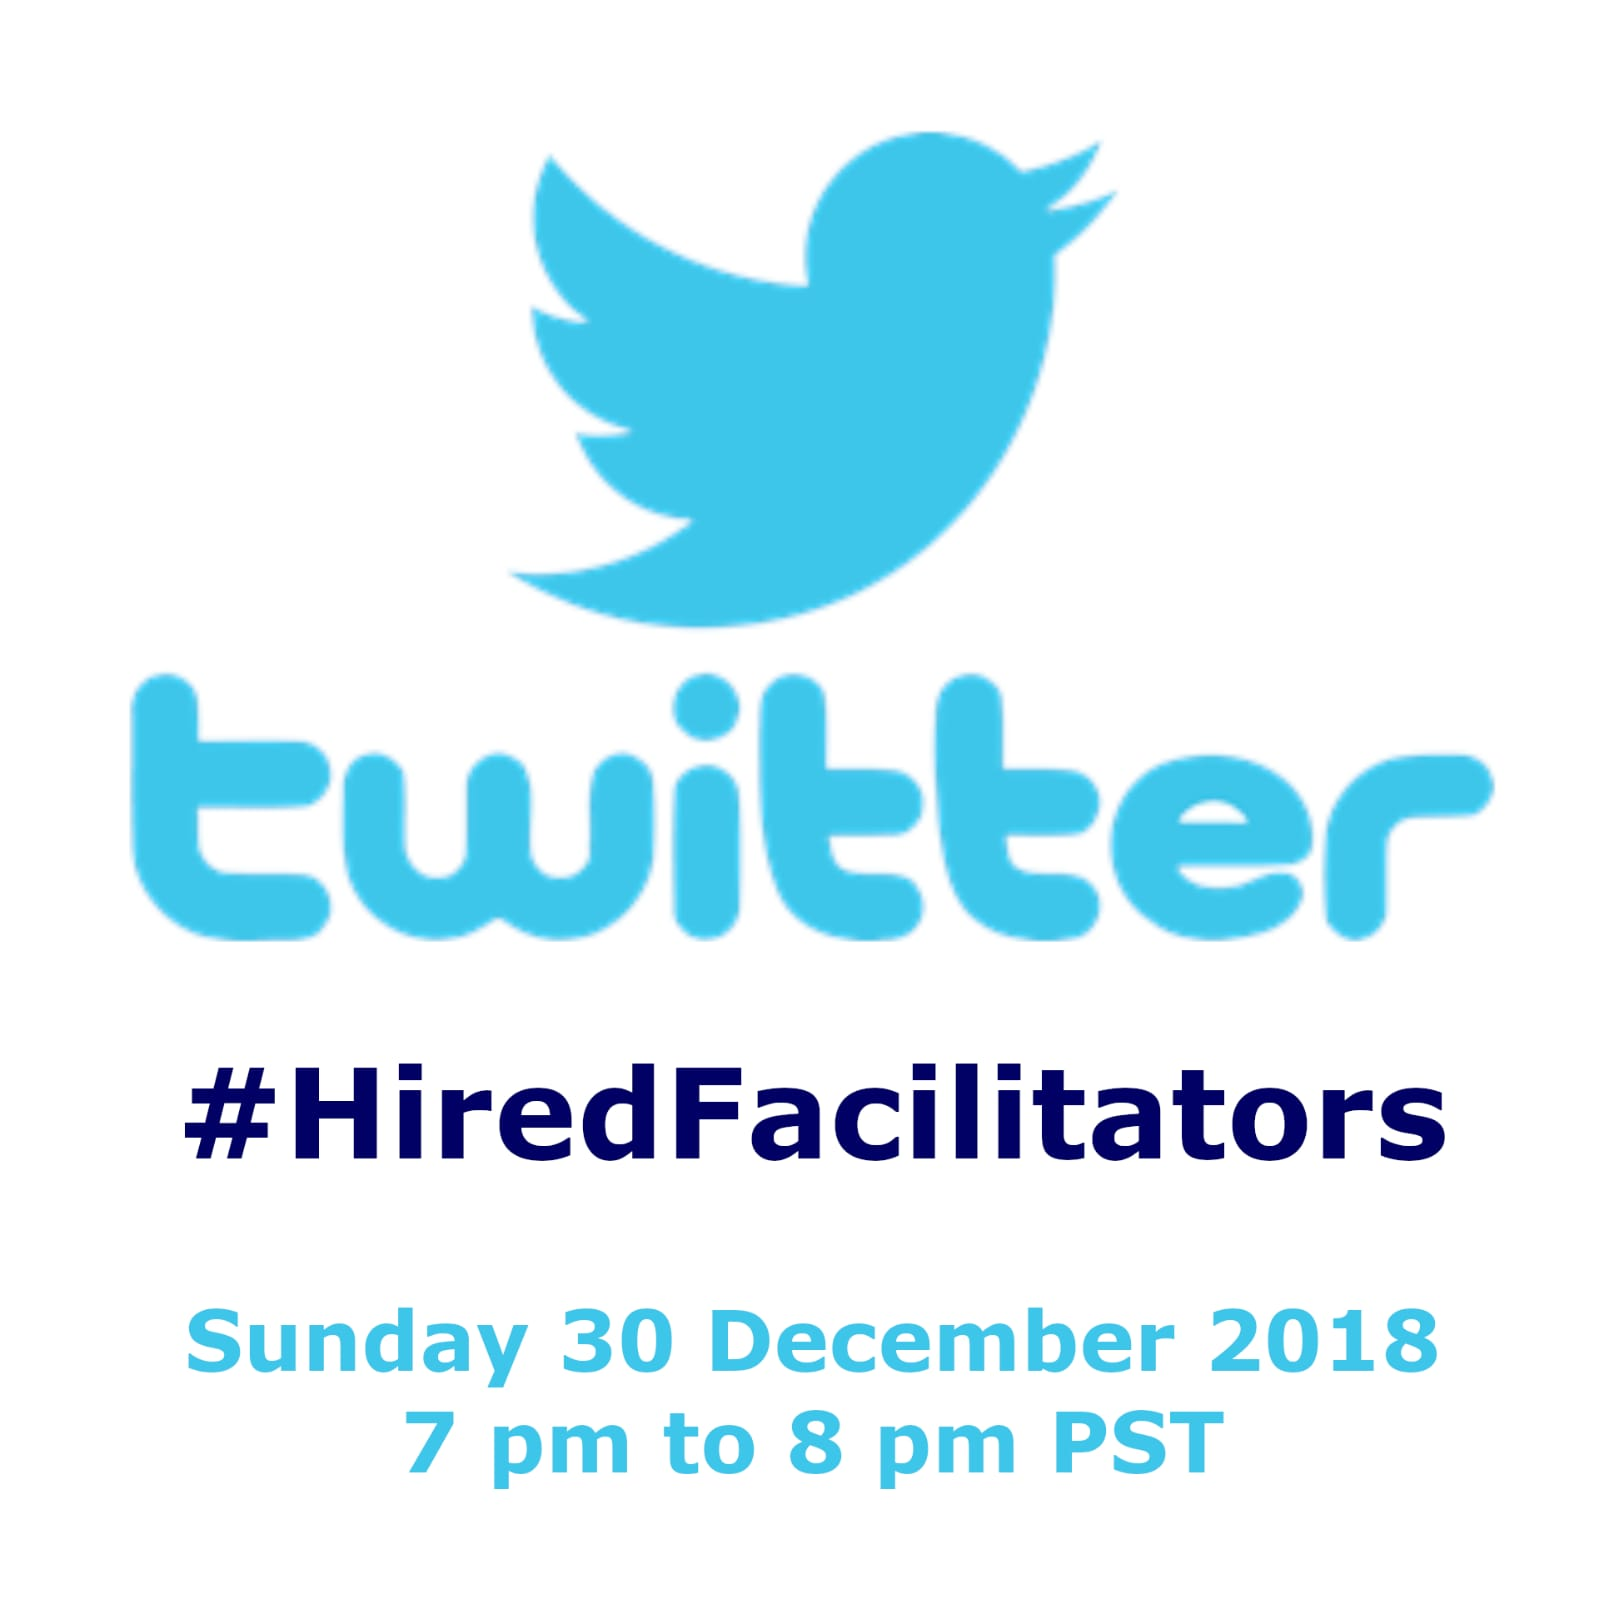 HiredFacilitators